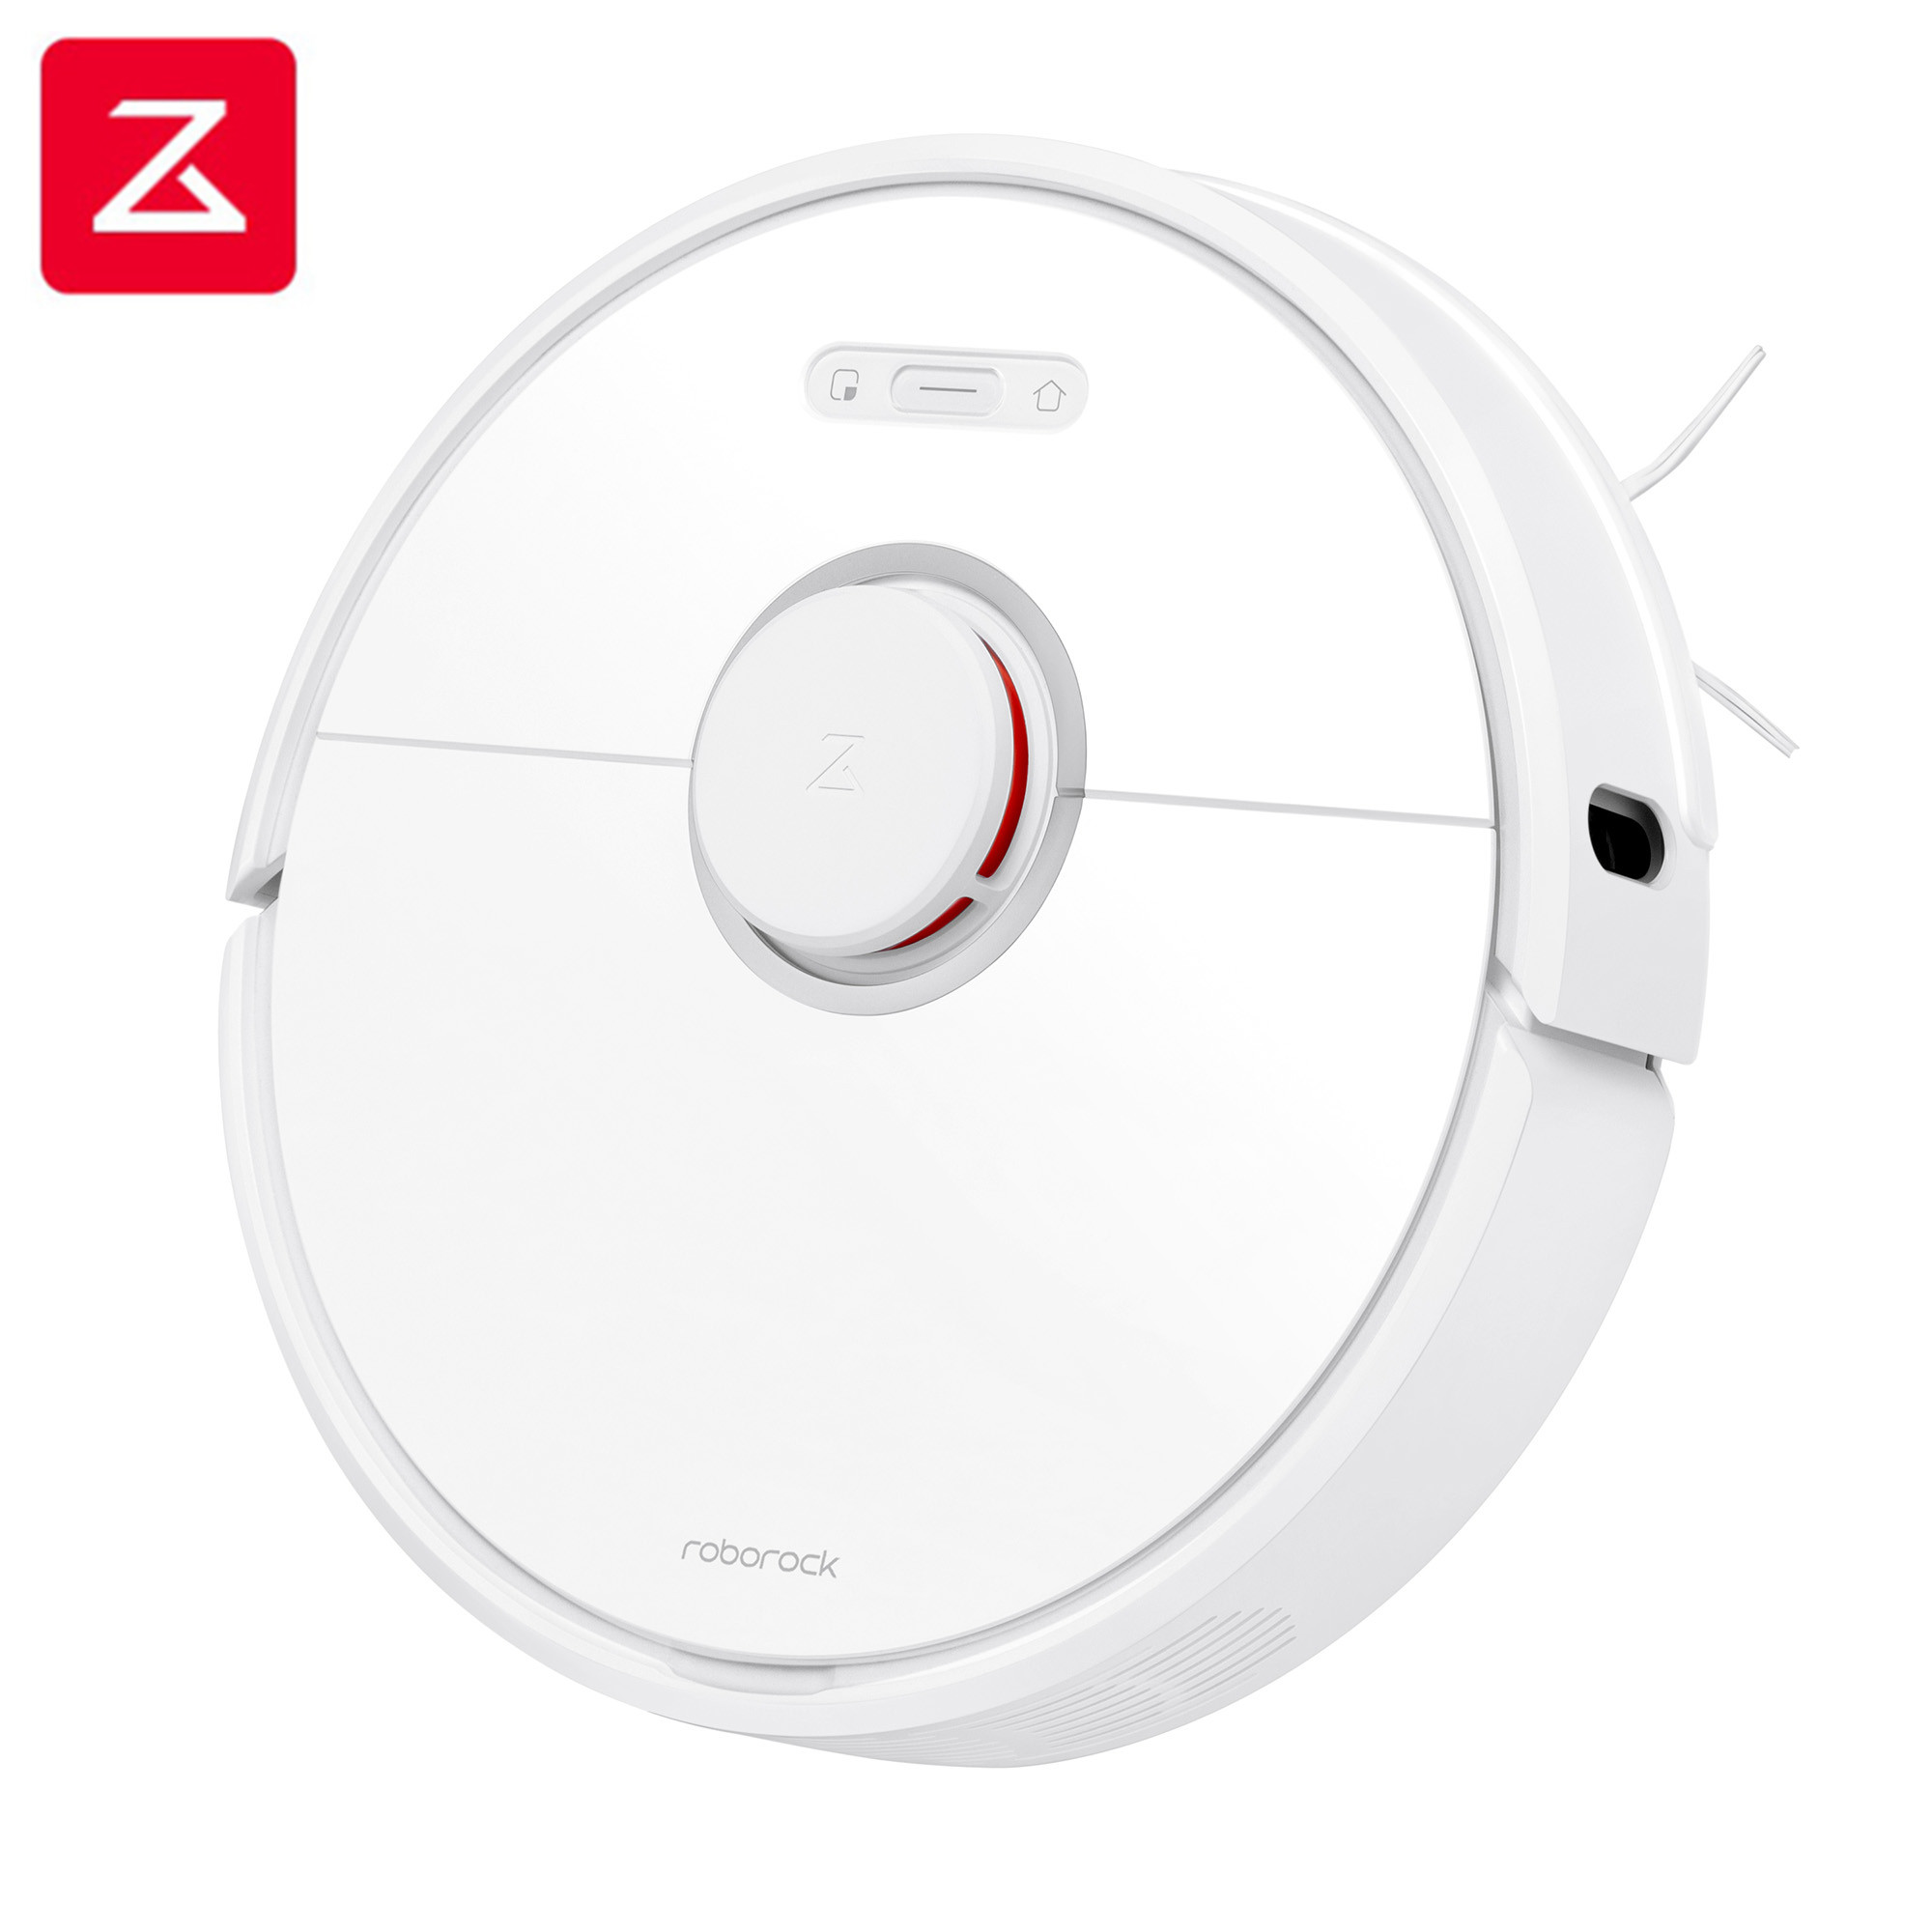 Roborock S6 Robot Vacuum Cleaner 2000pa Home Automatic Sweeping Mopping Dust Sterilize Smart Planned Machine Remote Control